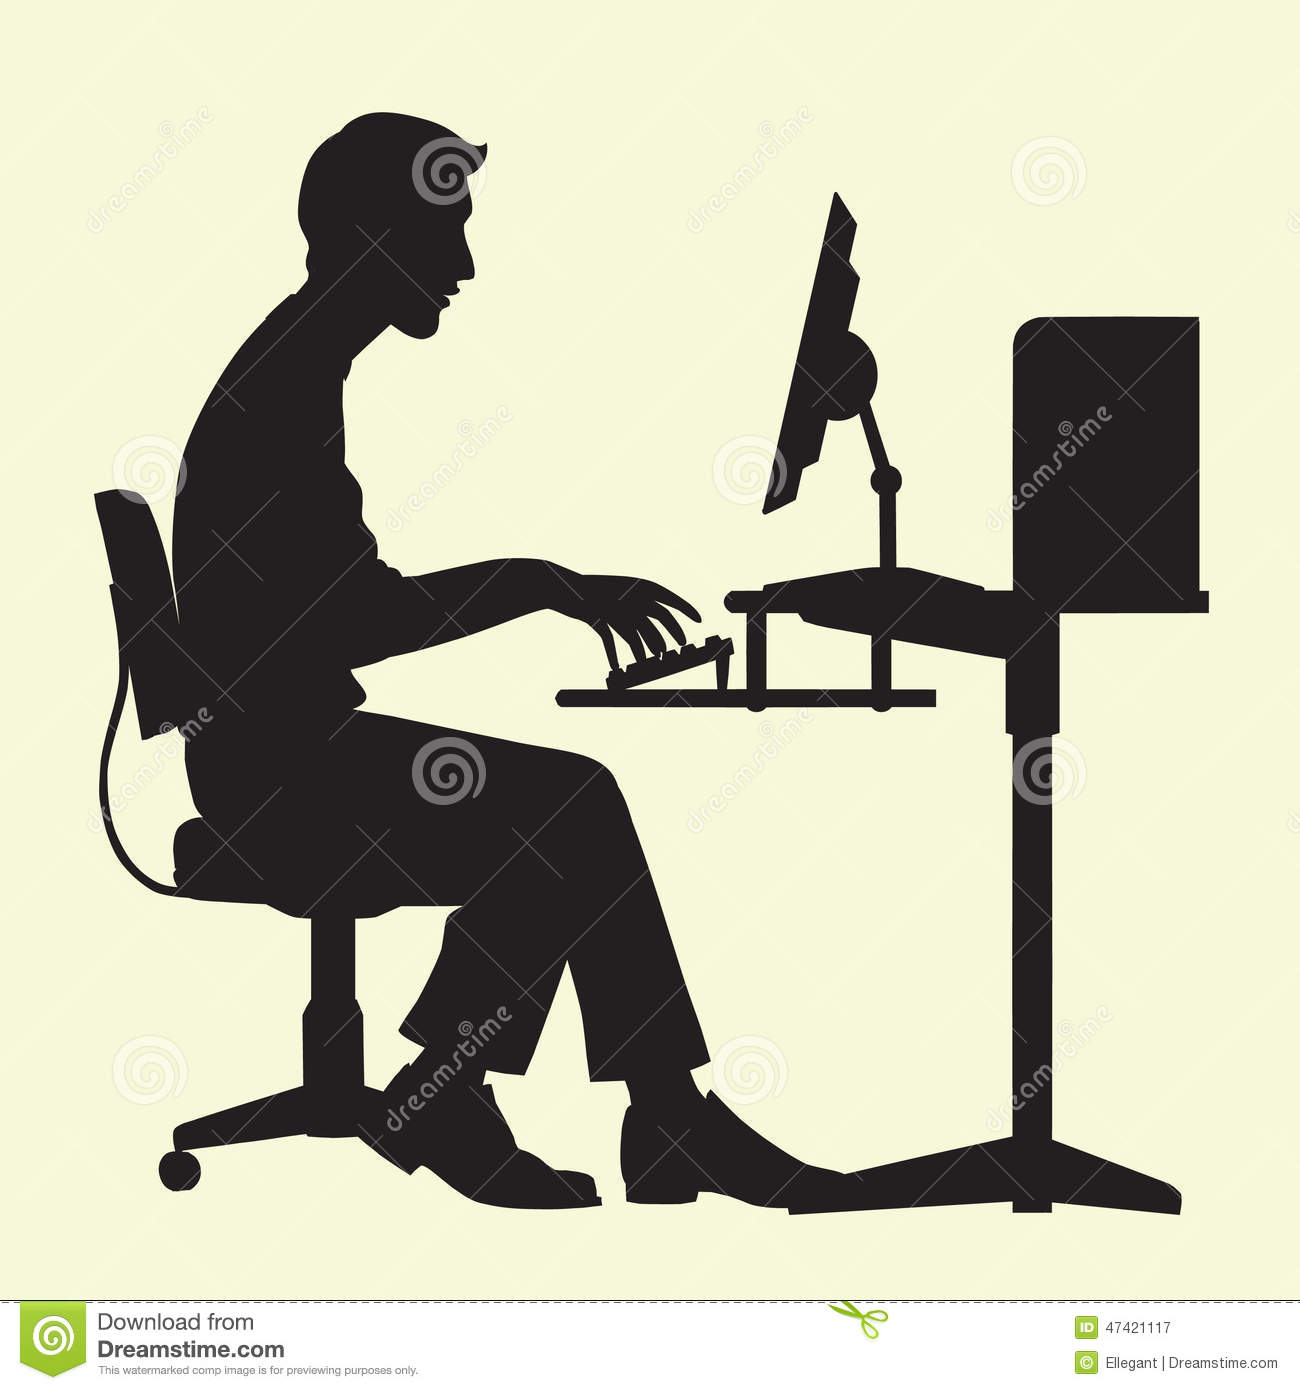 Man On Computer Stock Vector - Image: 47421117